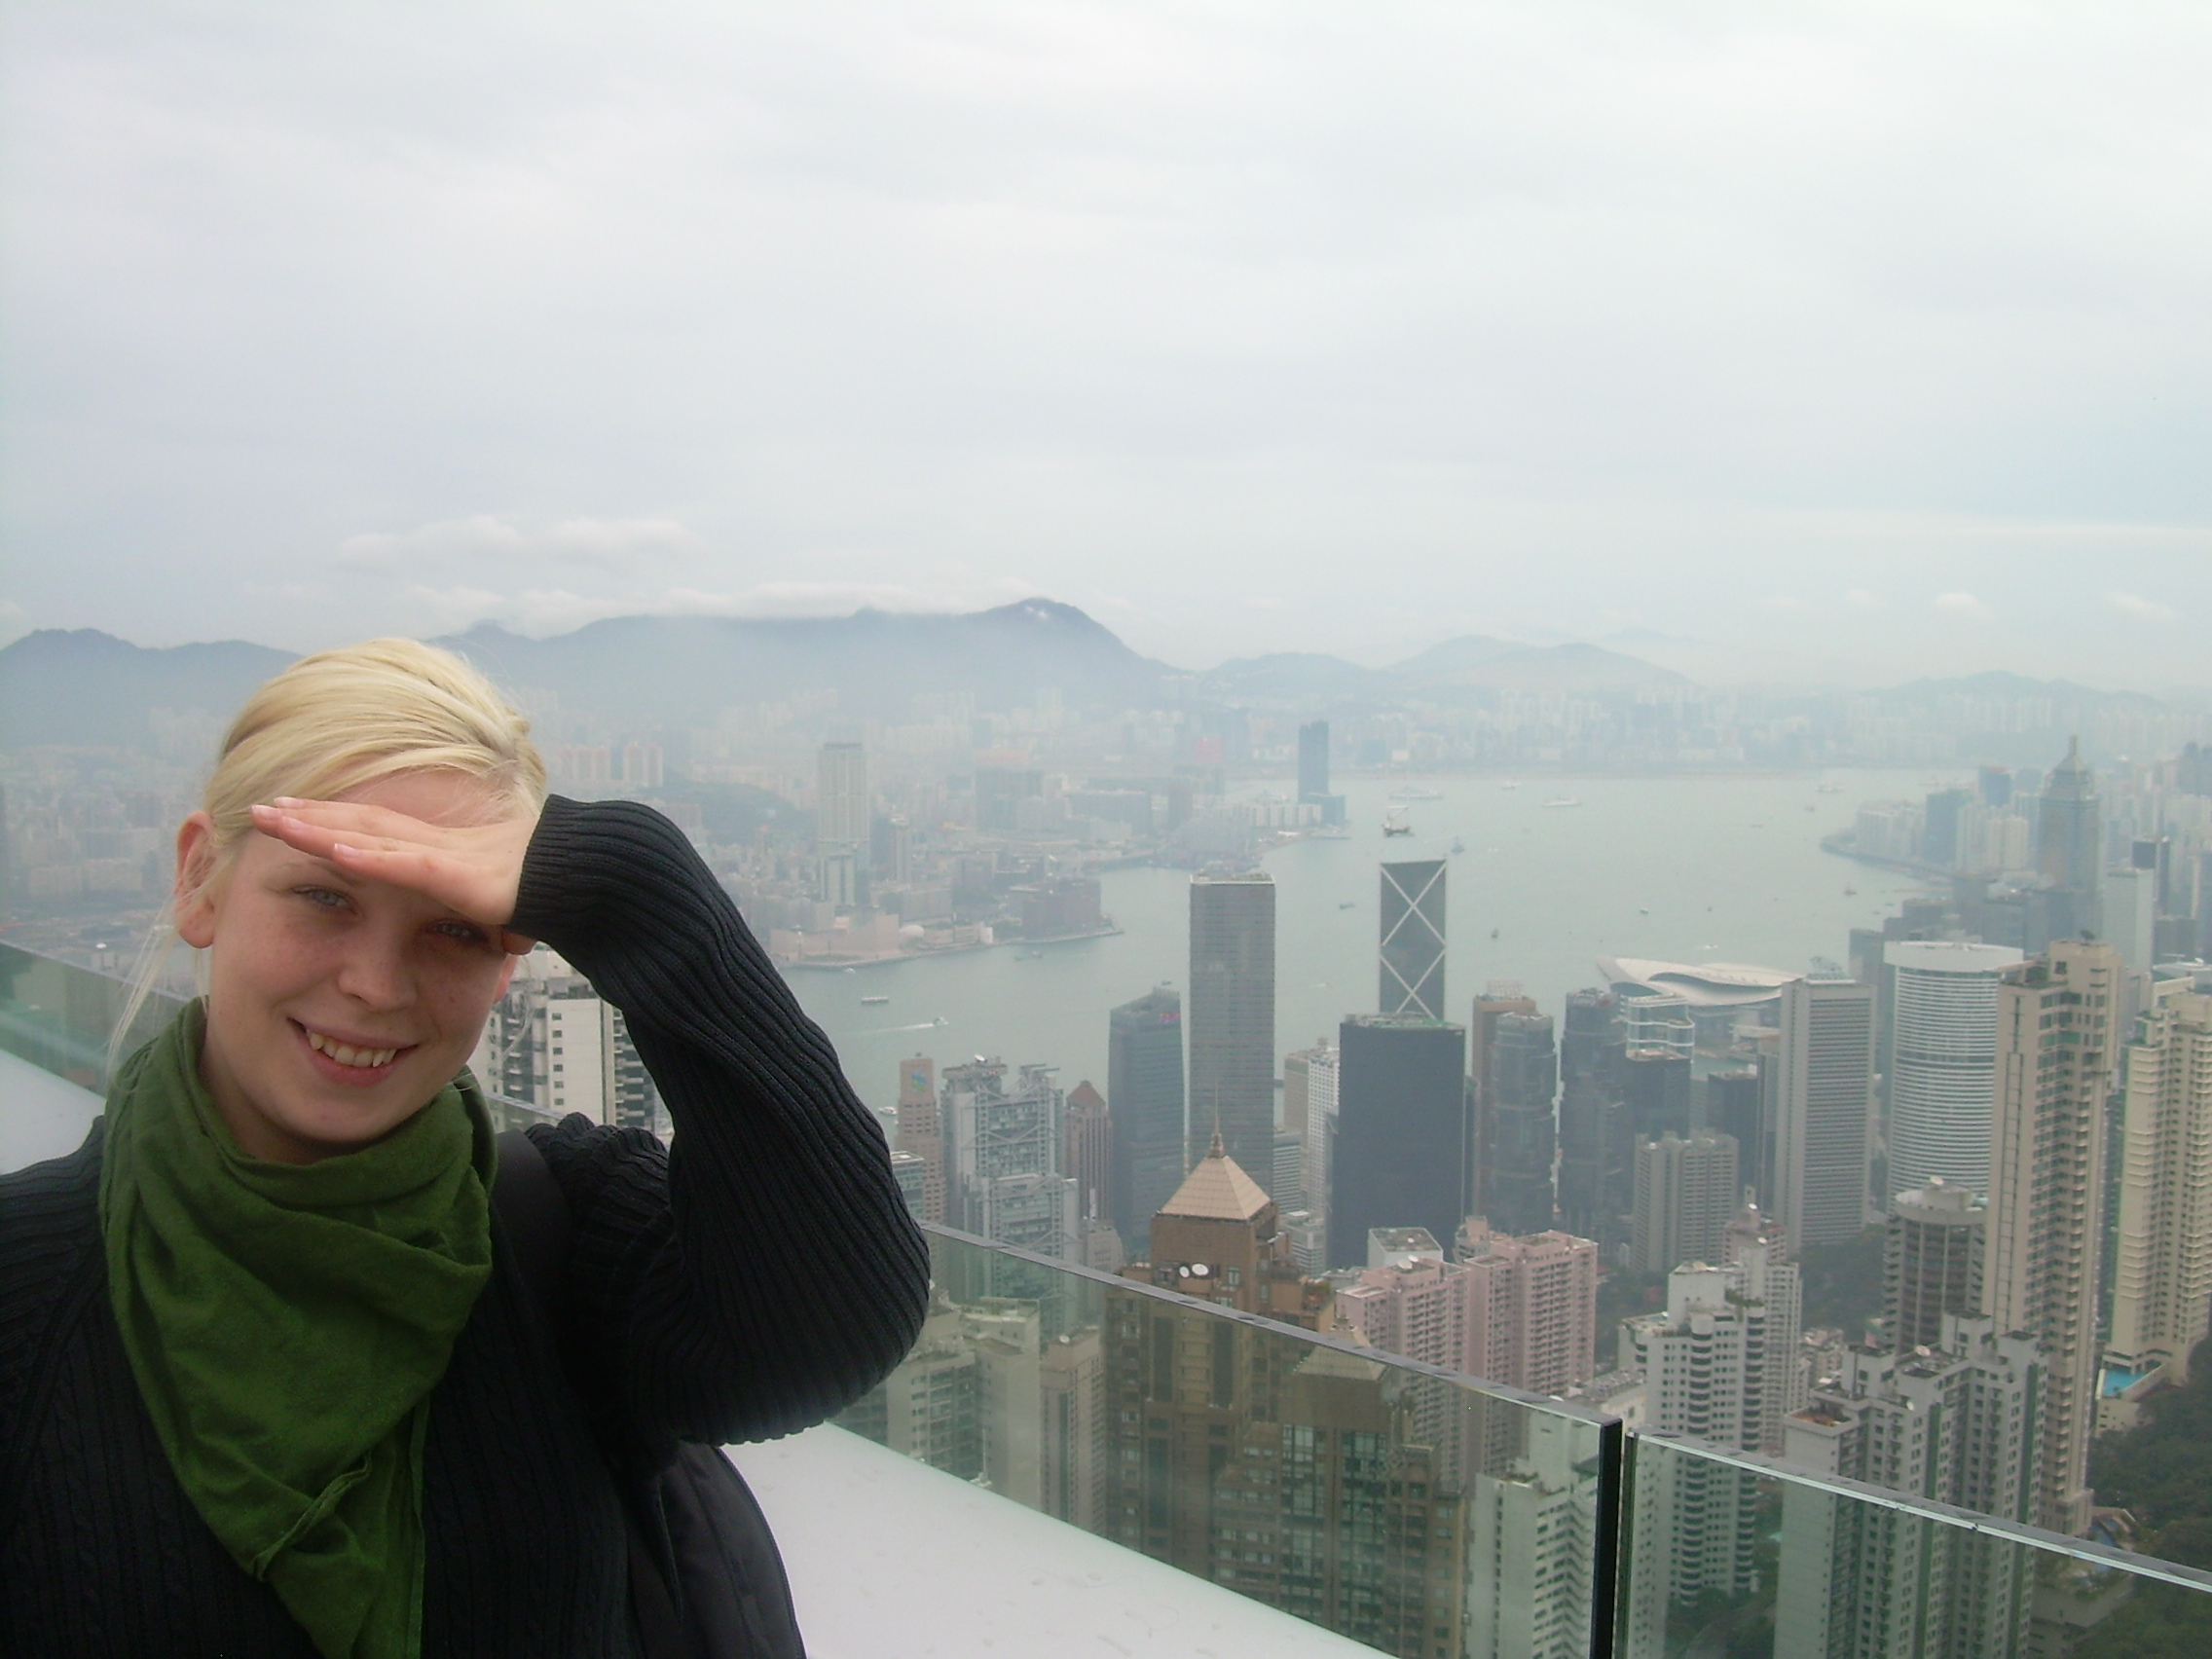 We started off with The Peak (view point) to make sure to get several perspectives of the city. And, yes, what you see is smog.